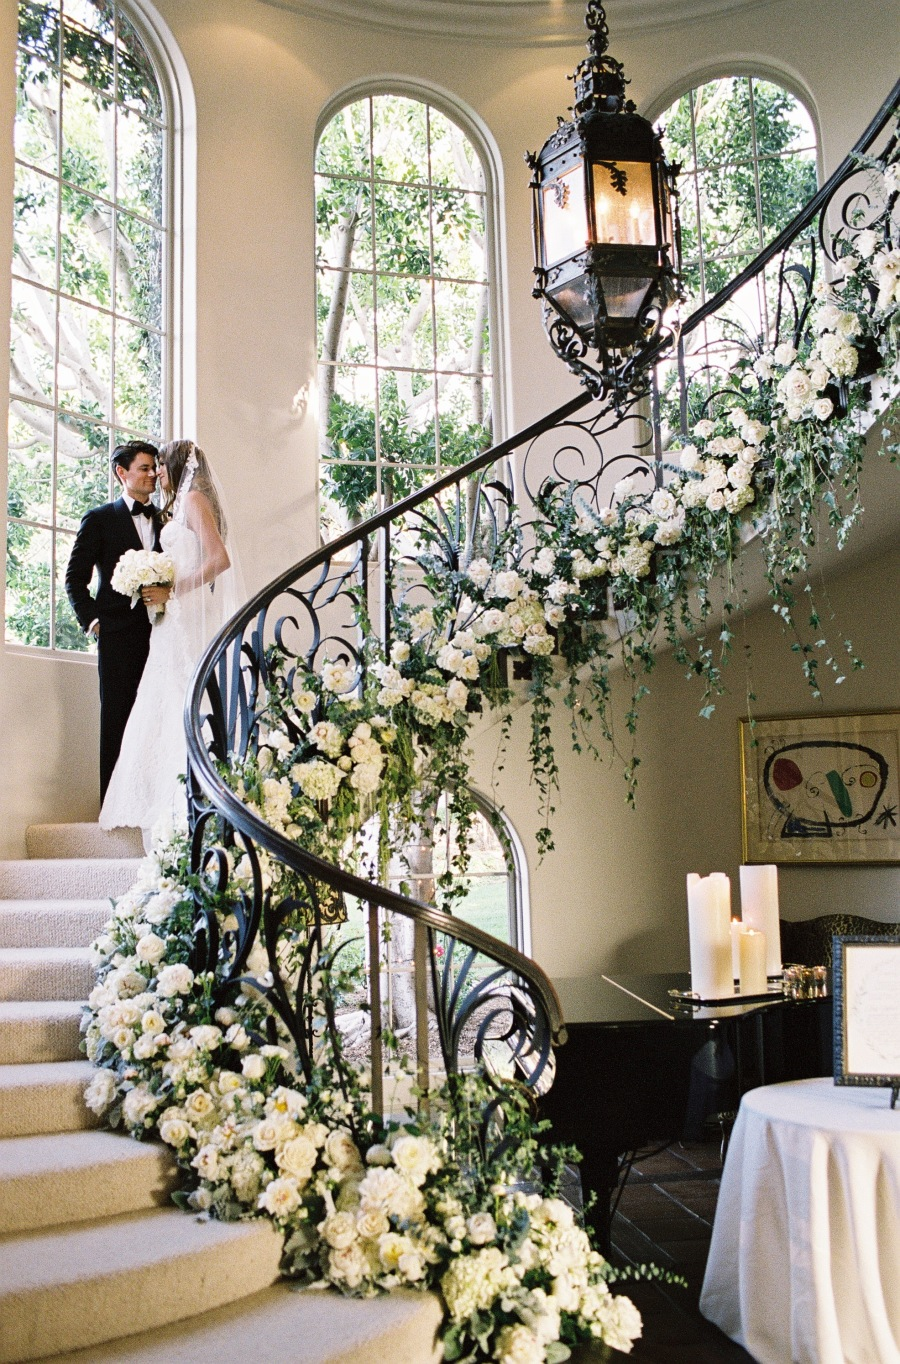 4 Show Stopping Wedding Flower Ideas - floral staircase garland